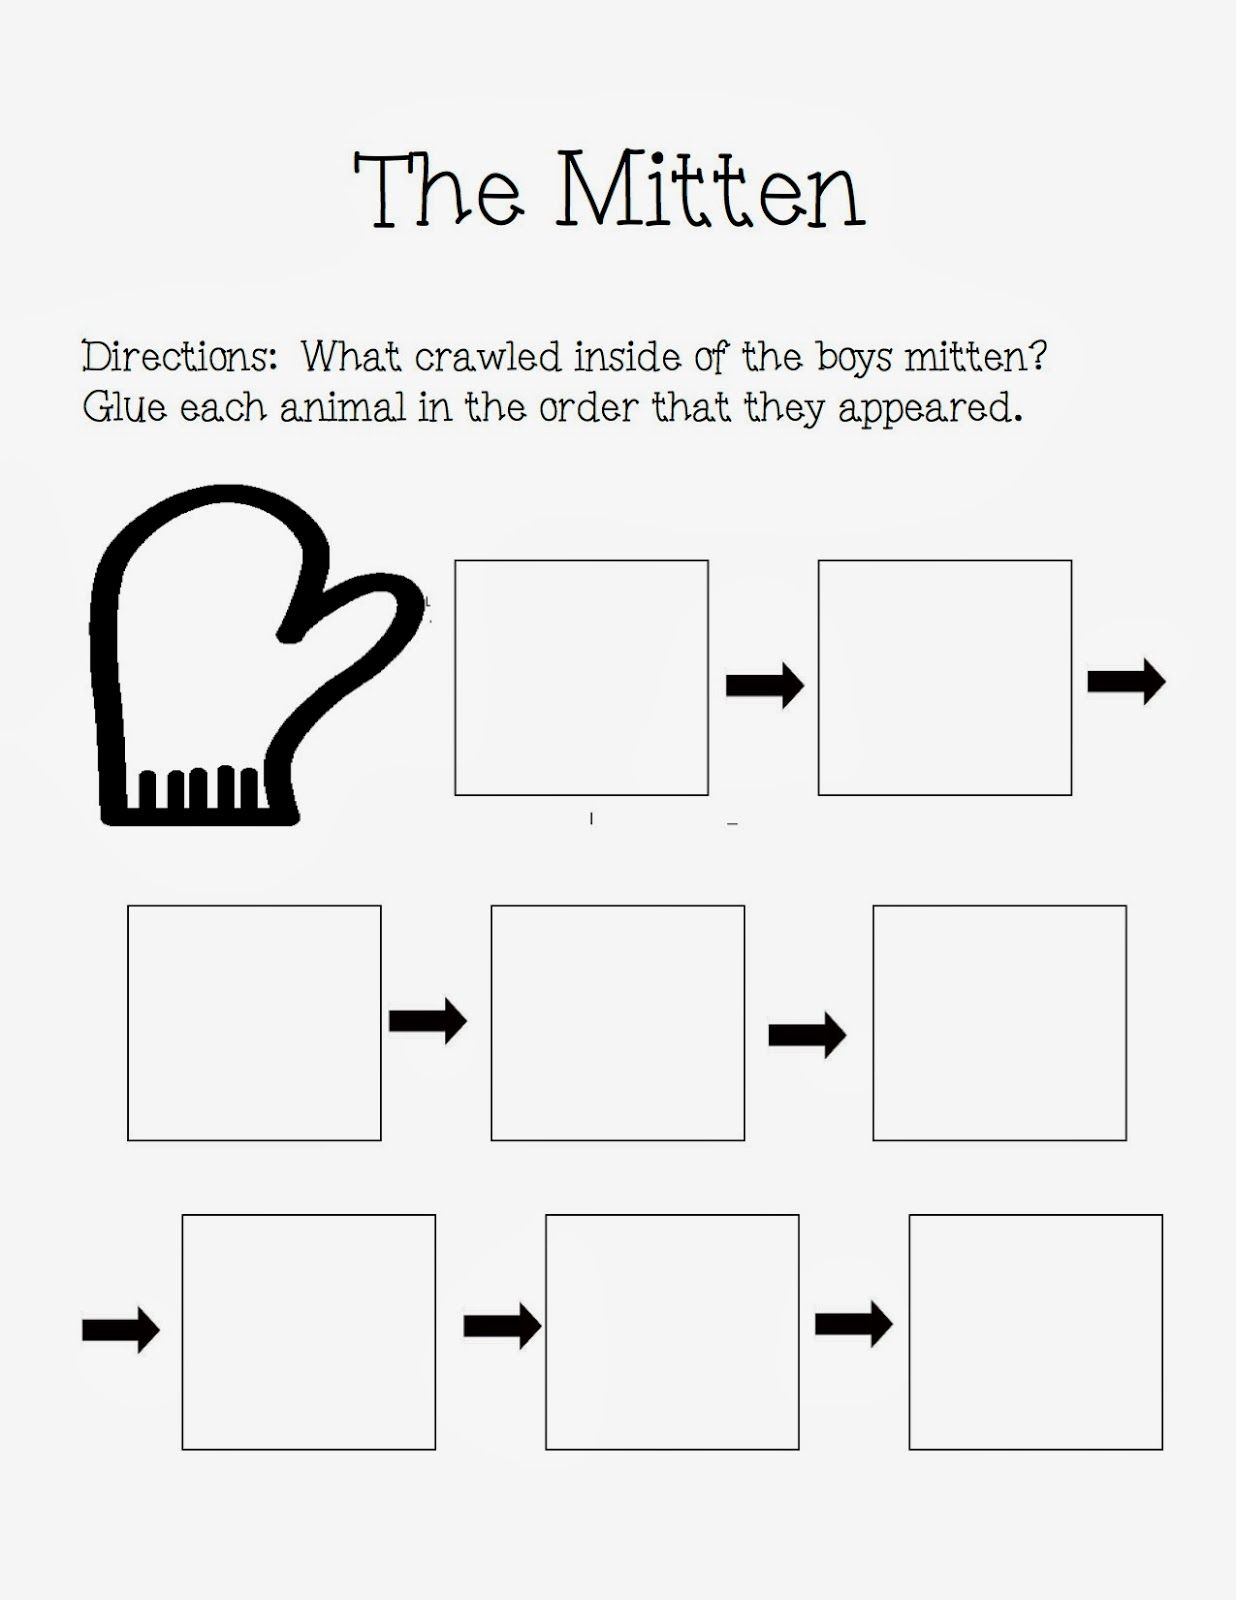 The Autism Adventures Of Room 83 The Mitten By Jan Brett Activities